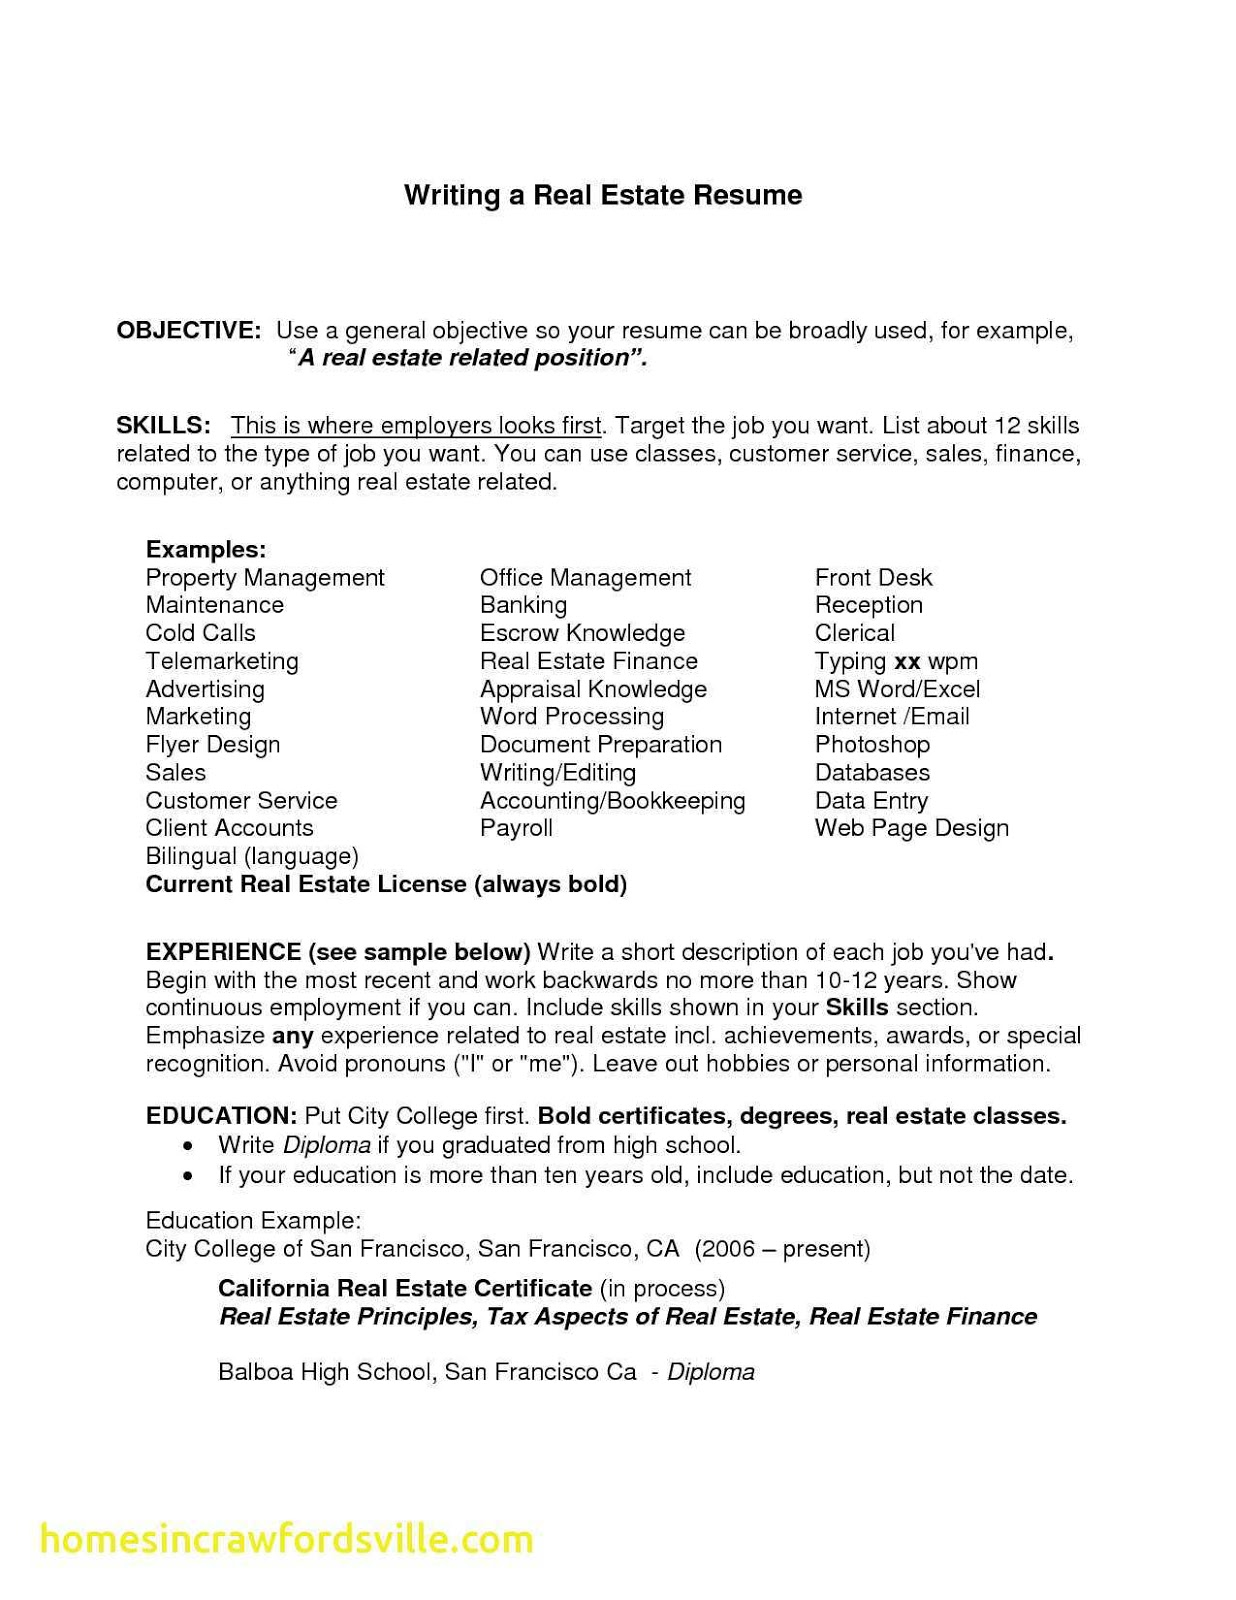 resume objective sample job first format good general examples hire heroes olx search Resume Good General Resume Objective Examples